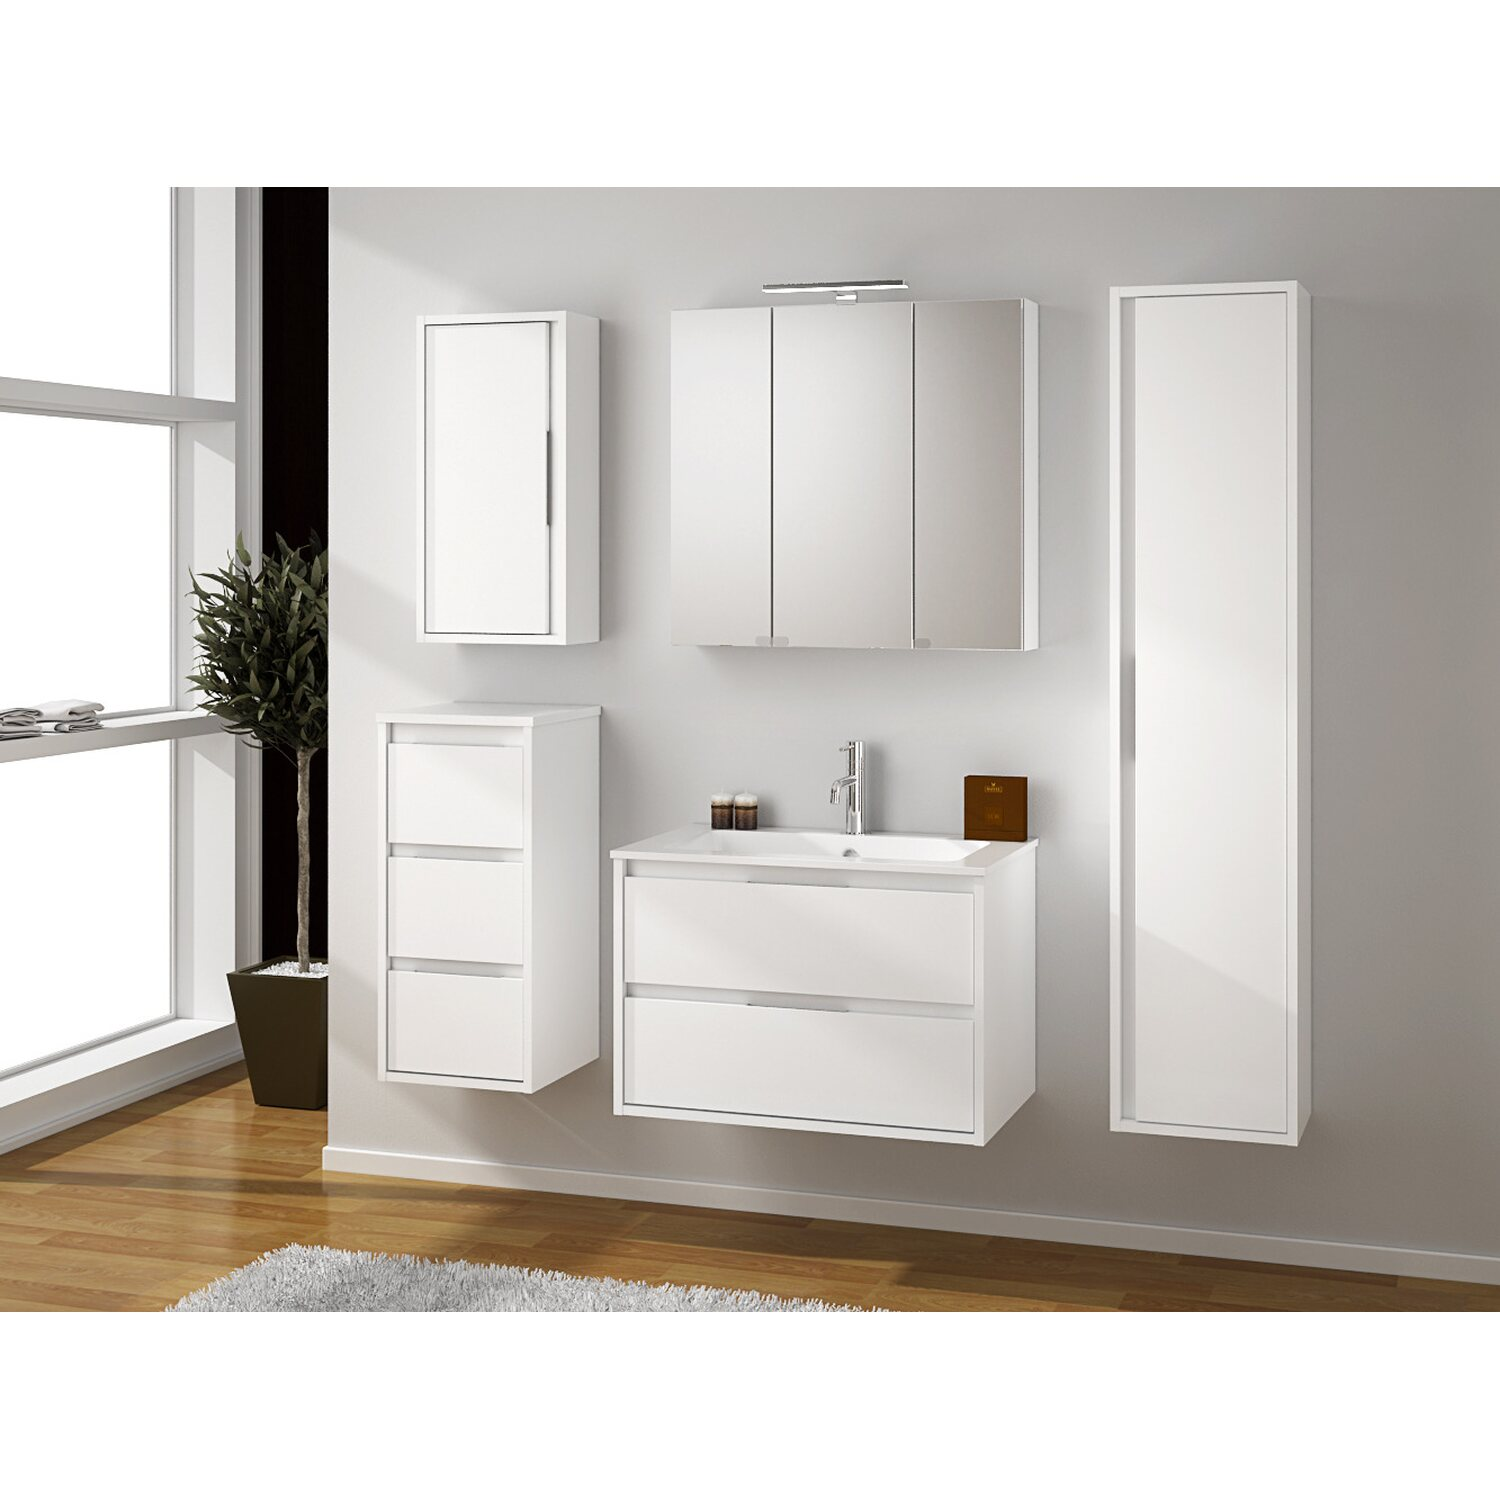 spiegelschrank loto 75 cm mit 3 t ren gl nzend weiss lackiert kaufen bei obi. Black Bedroom Furniture Sets. Home Design Ideas